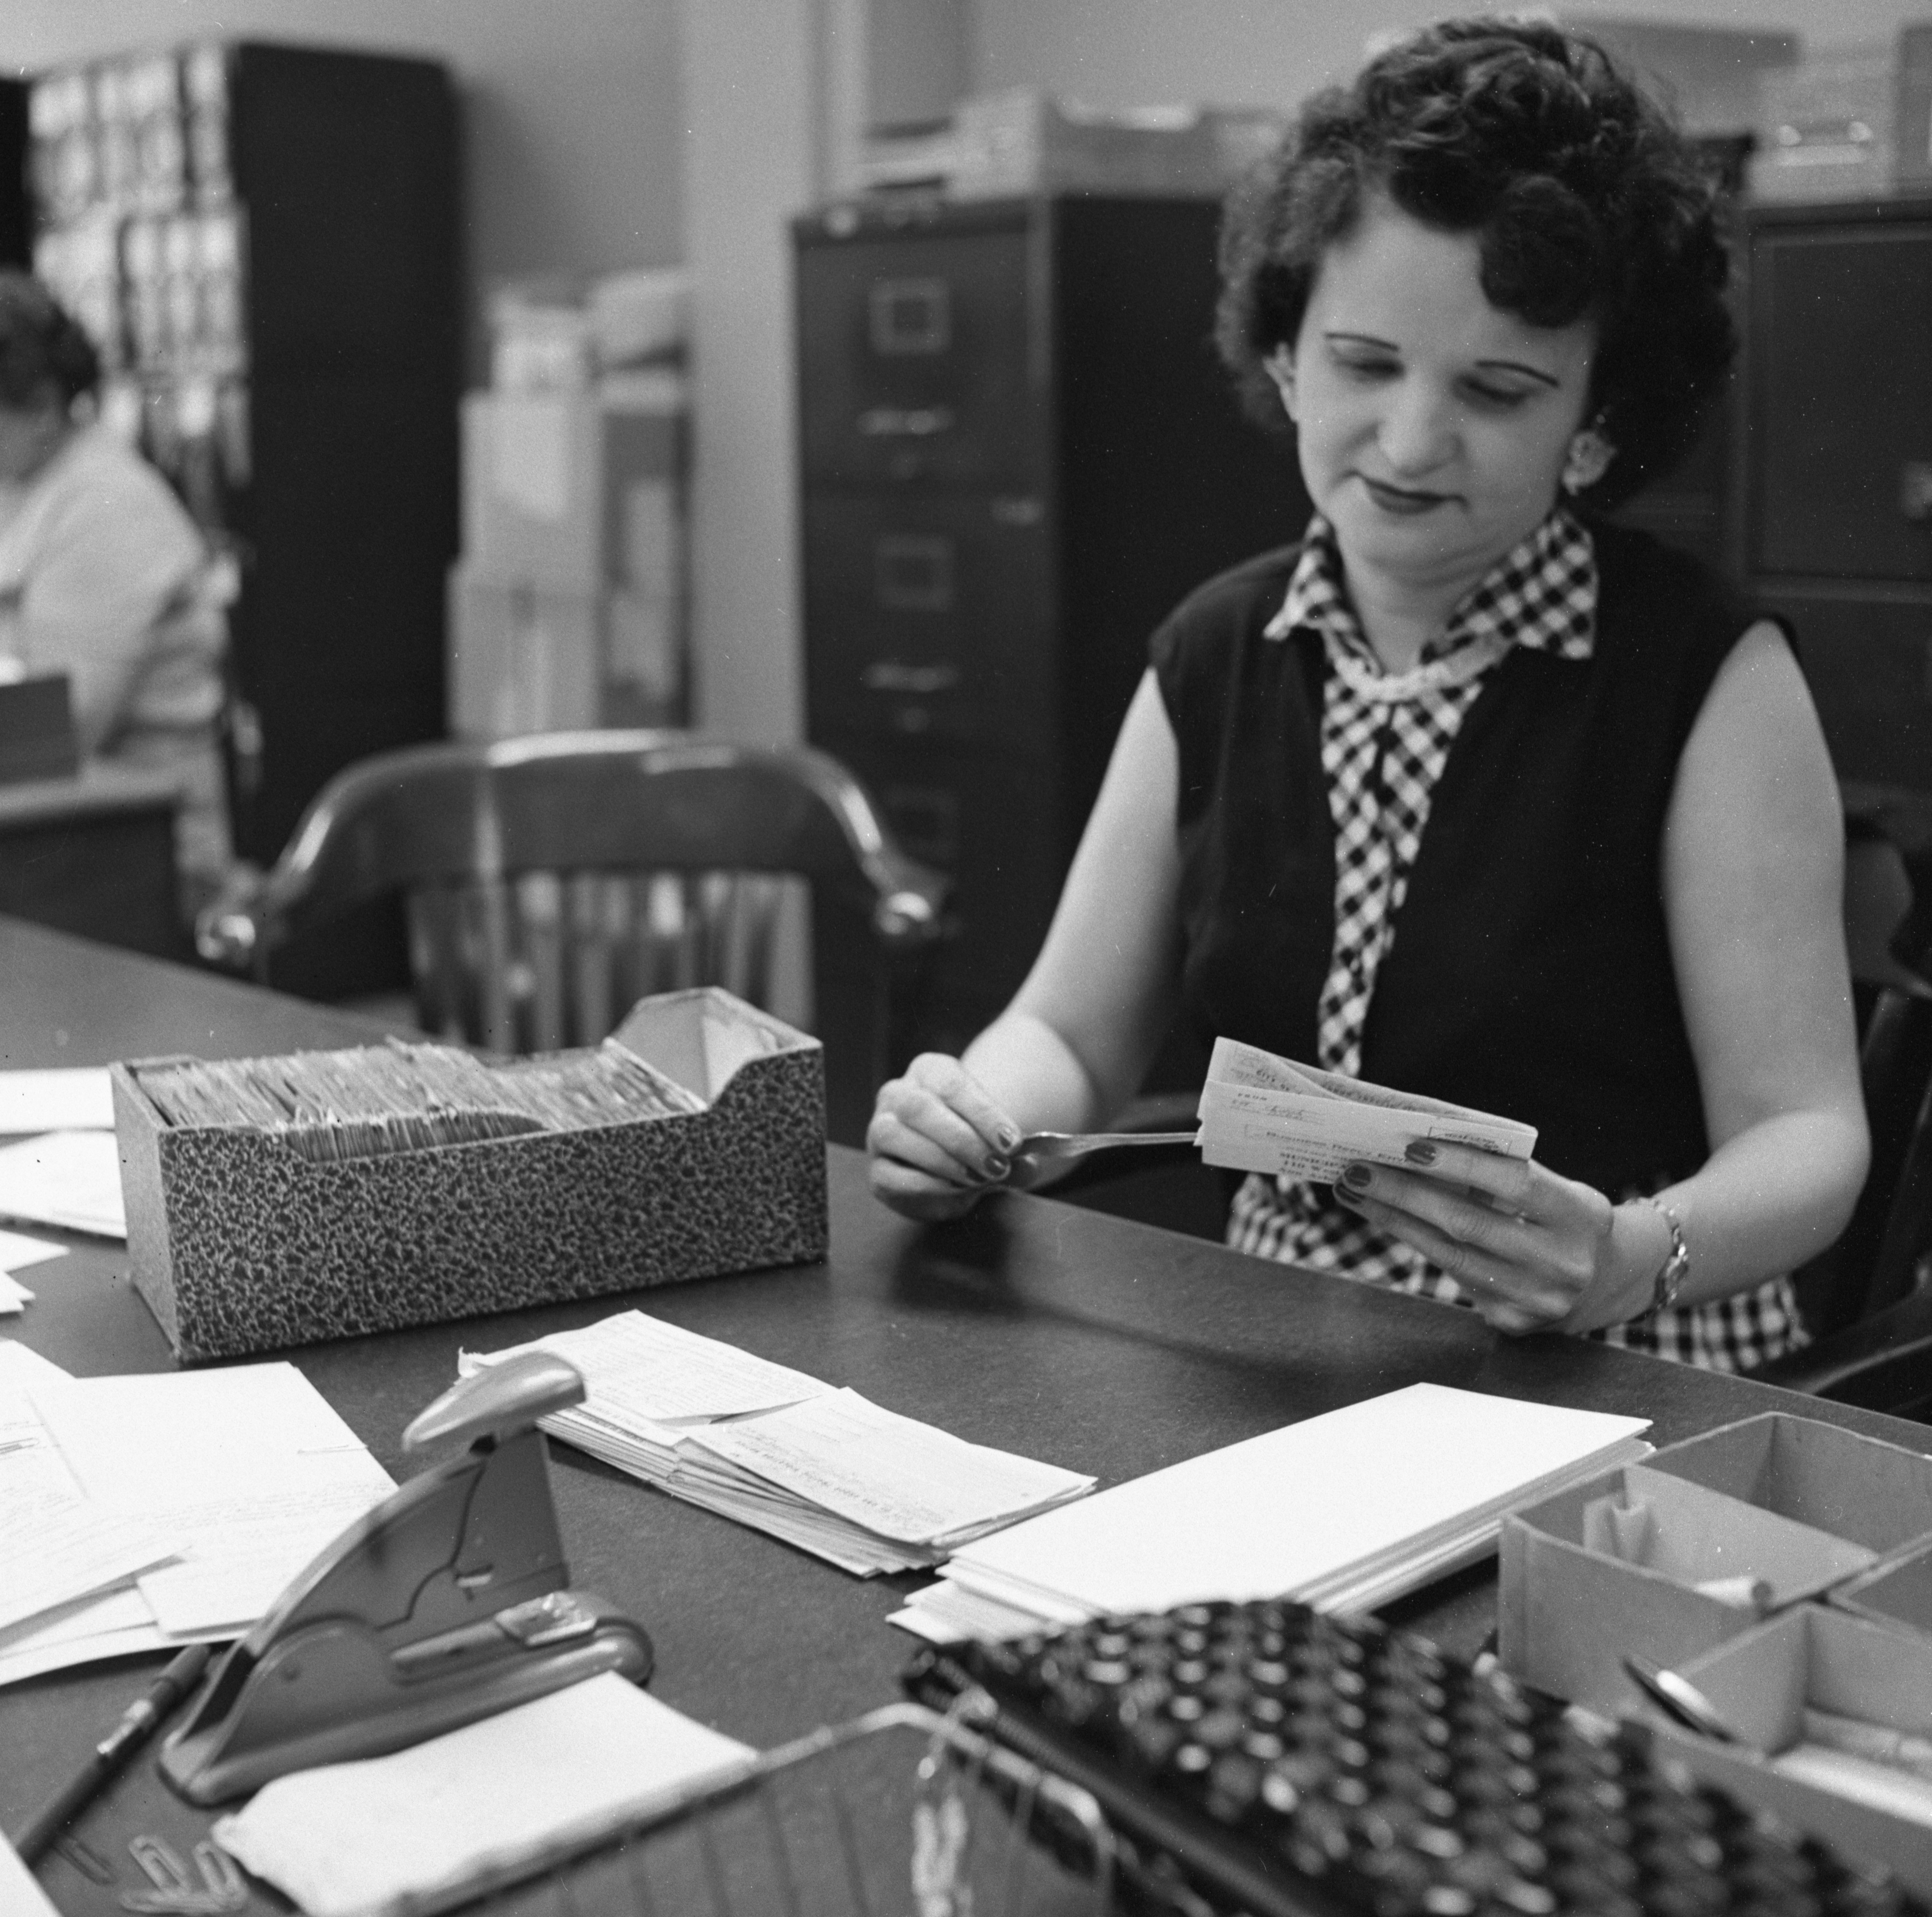 Nancy M. Juniewicz Opens Mailed Parking Tickets In Municipal Court Office, May 1958 image